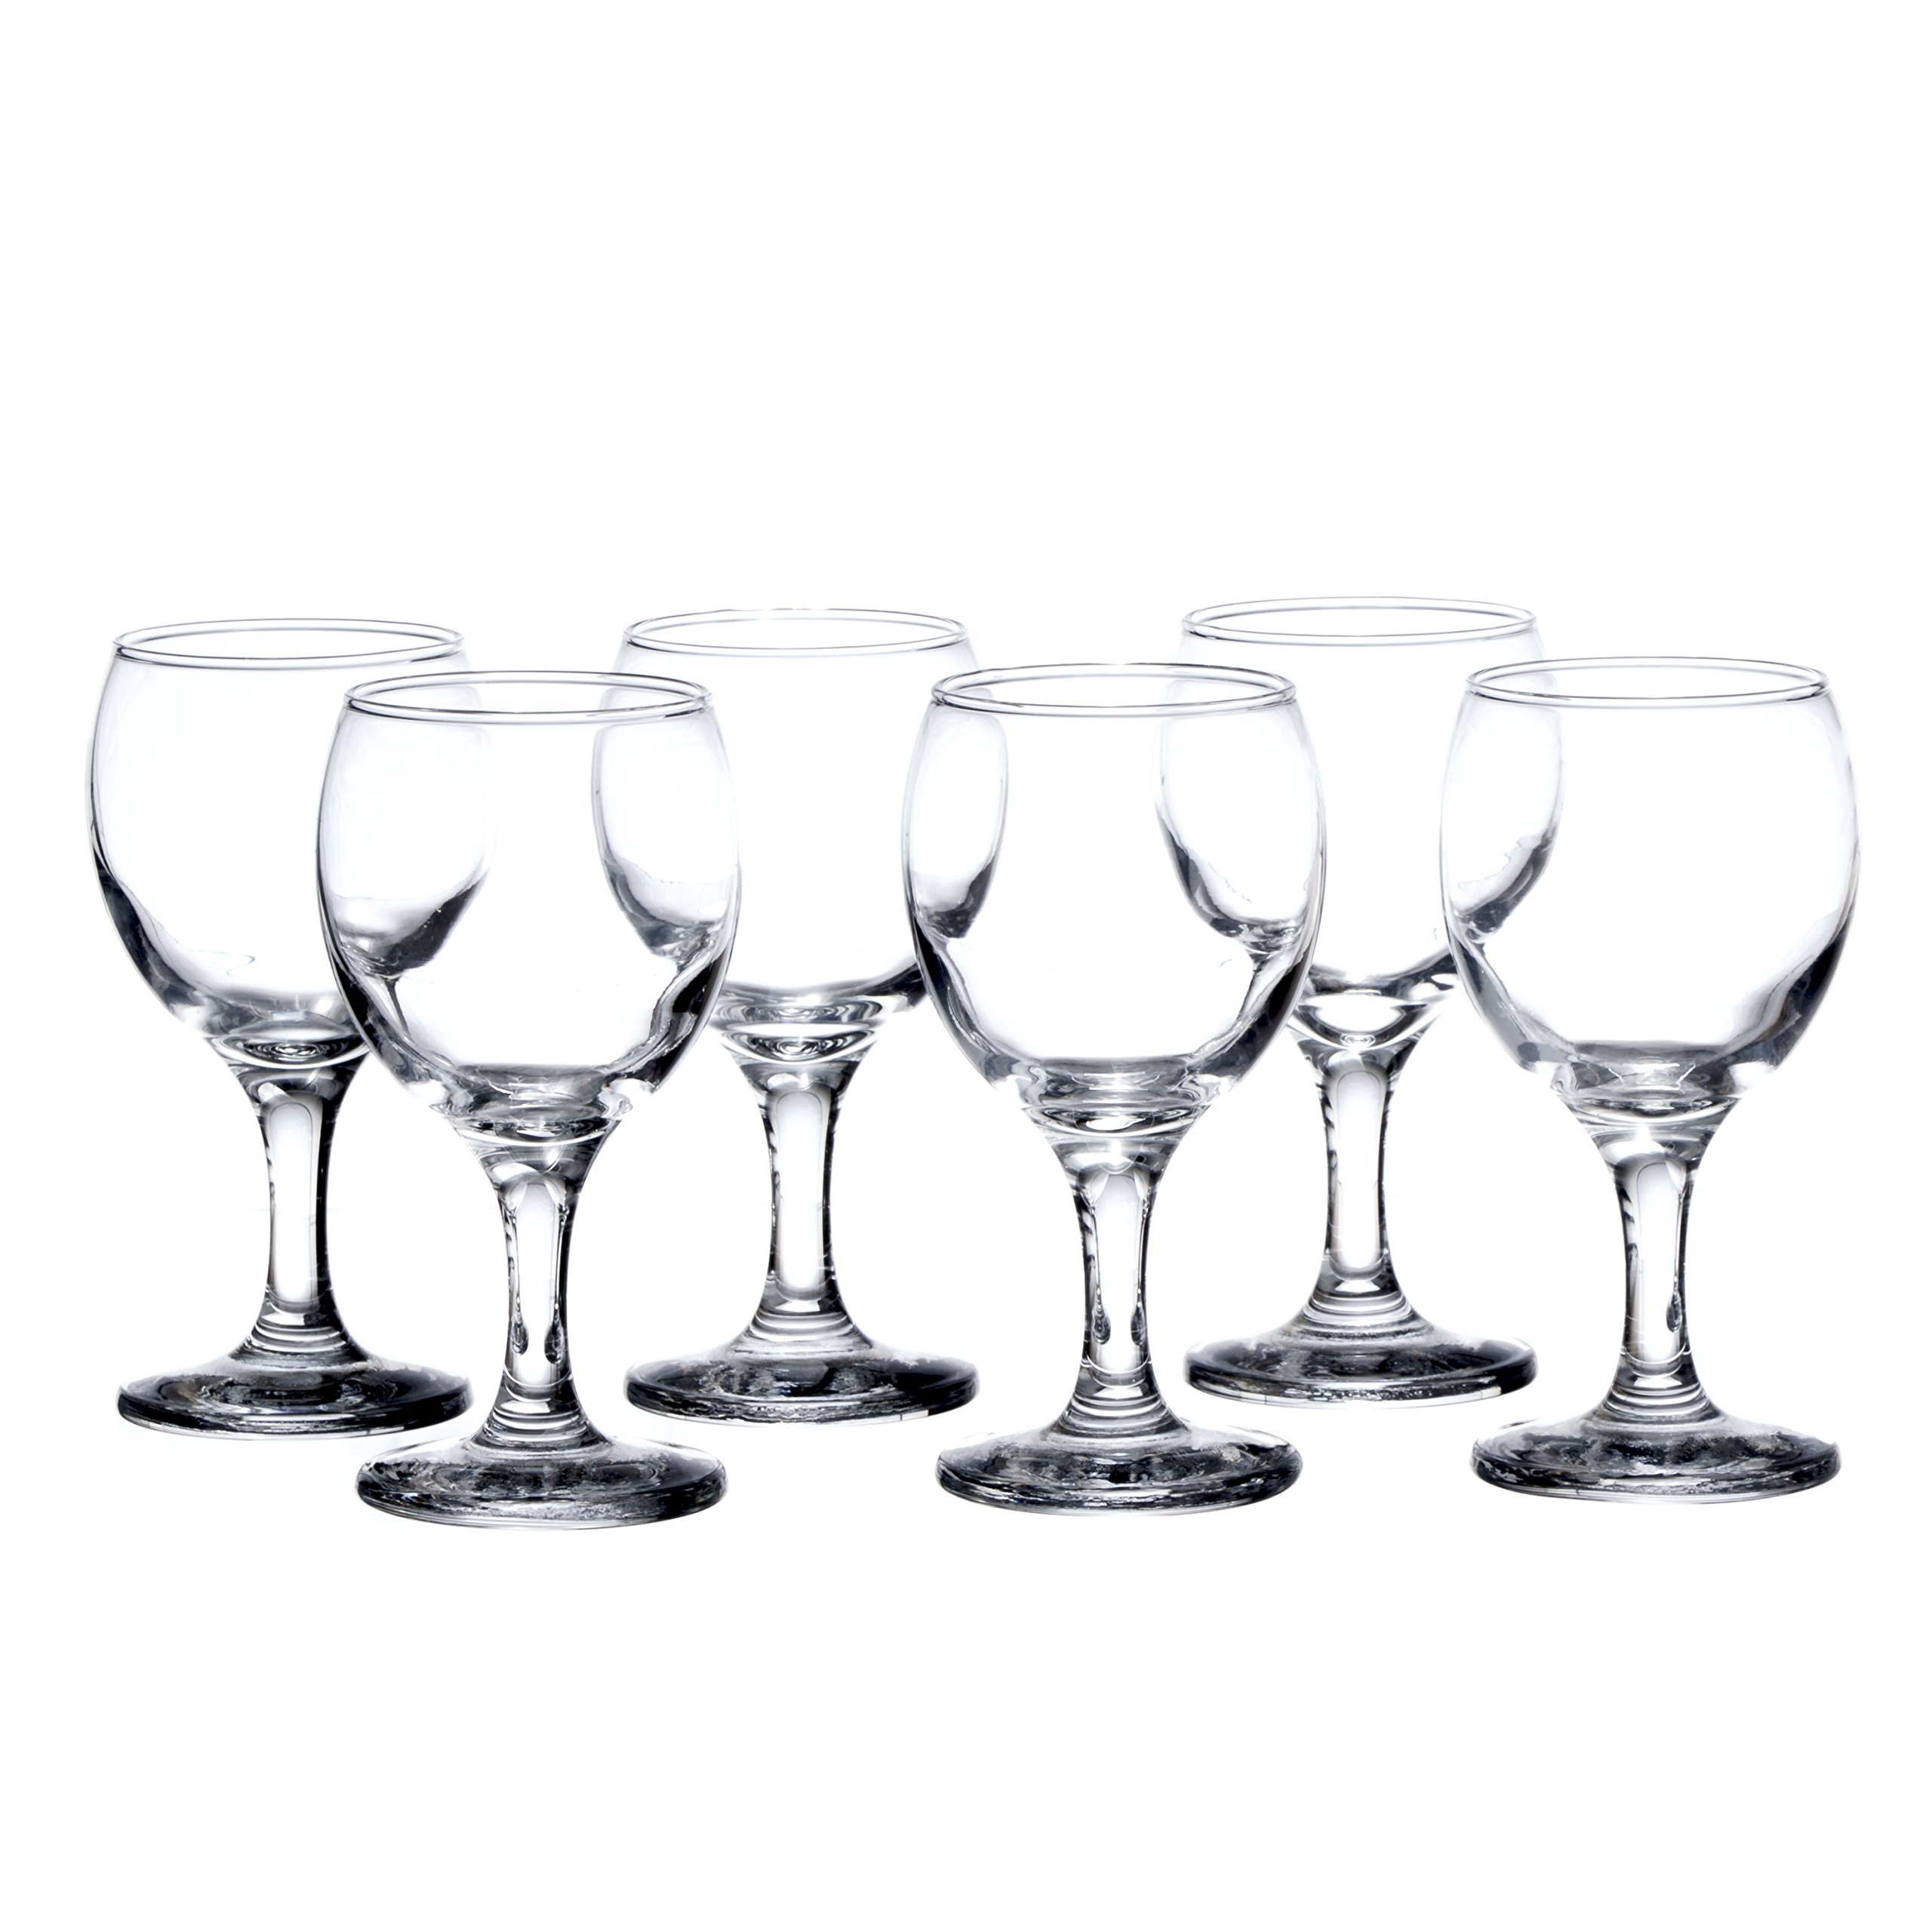 BISTRO 12-piece Wine Glasses Set (in 3 size), White, Red and Liquor Wine, Restaurant&Bar Quality, Durable Tempered Glass, Heavy Base, t.m. Pasabache (7 1/2 oz) by Pasabache (Image #2)